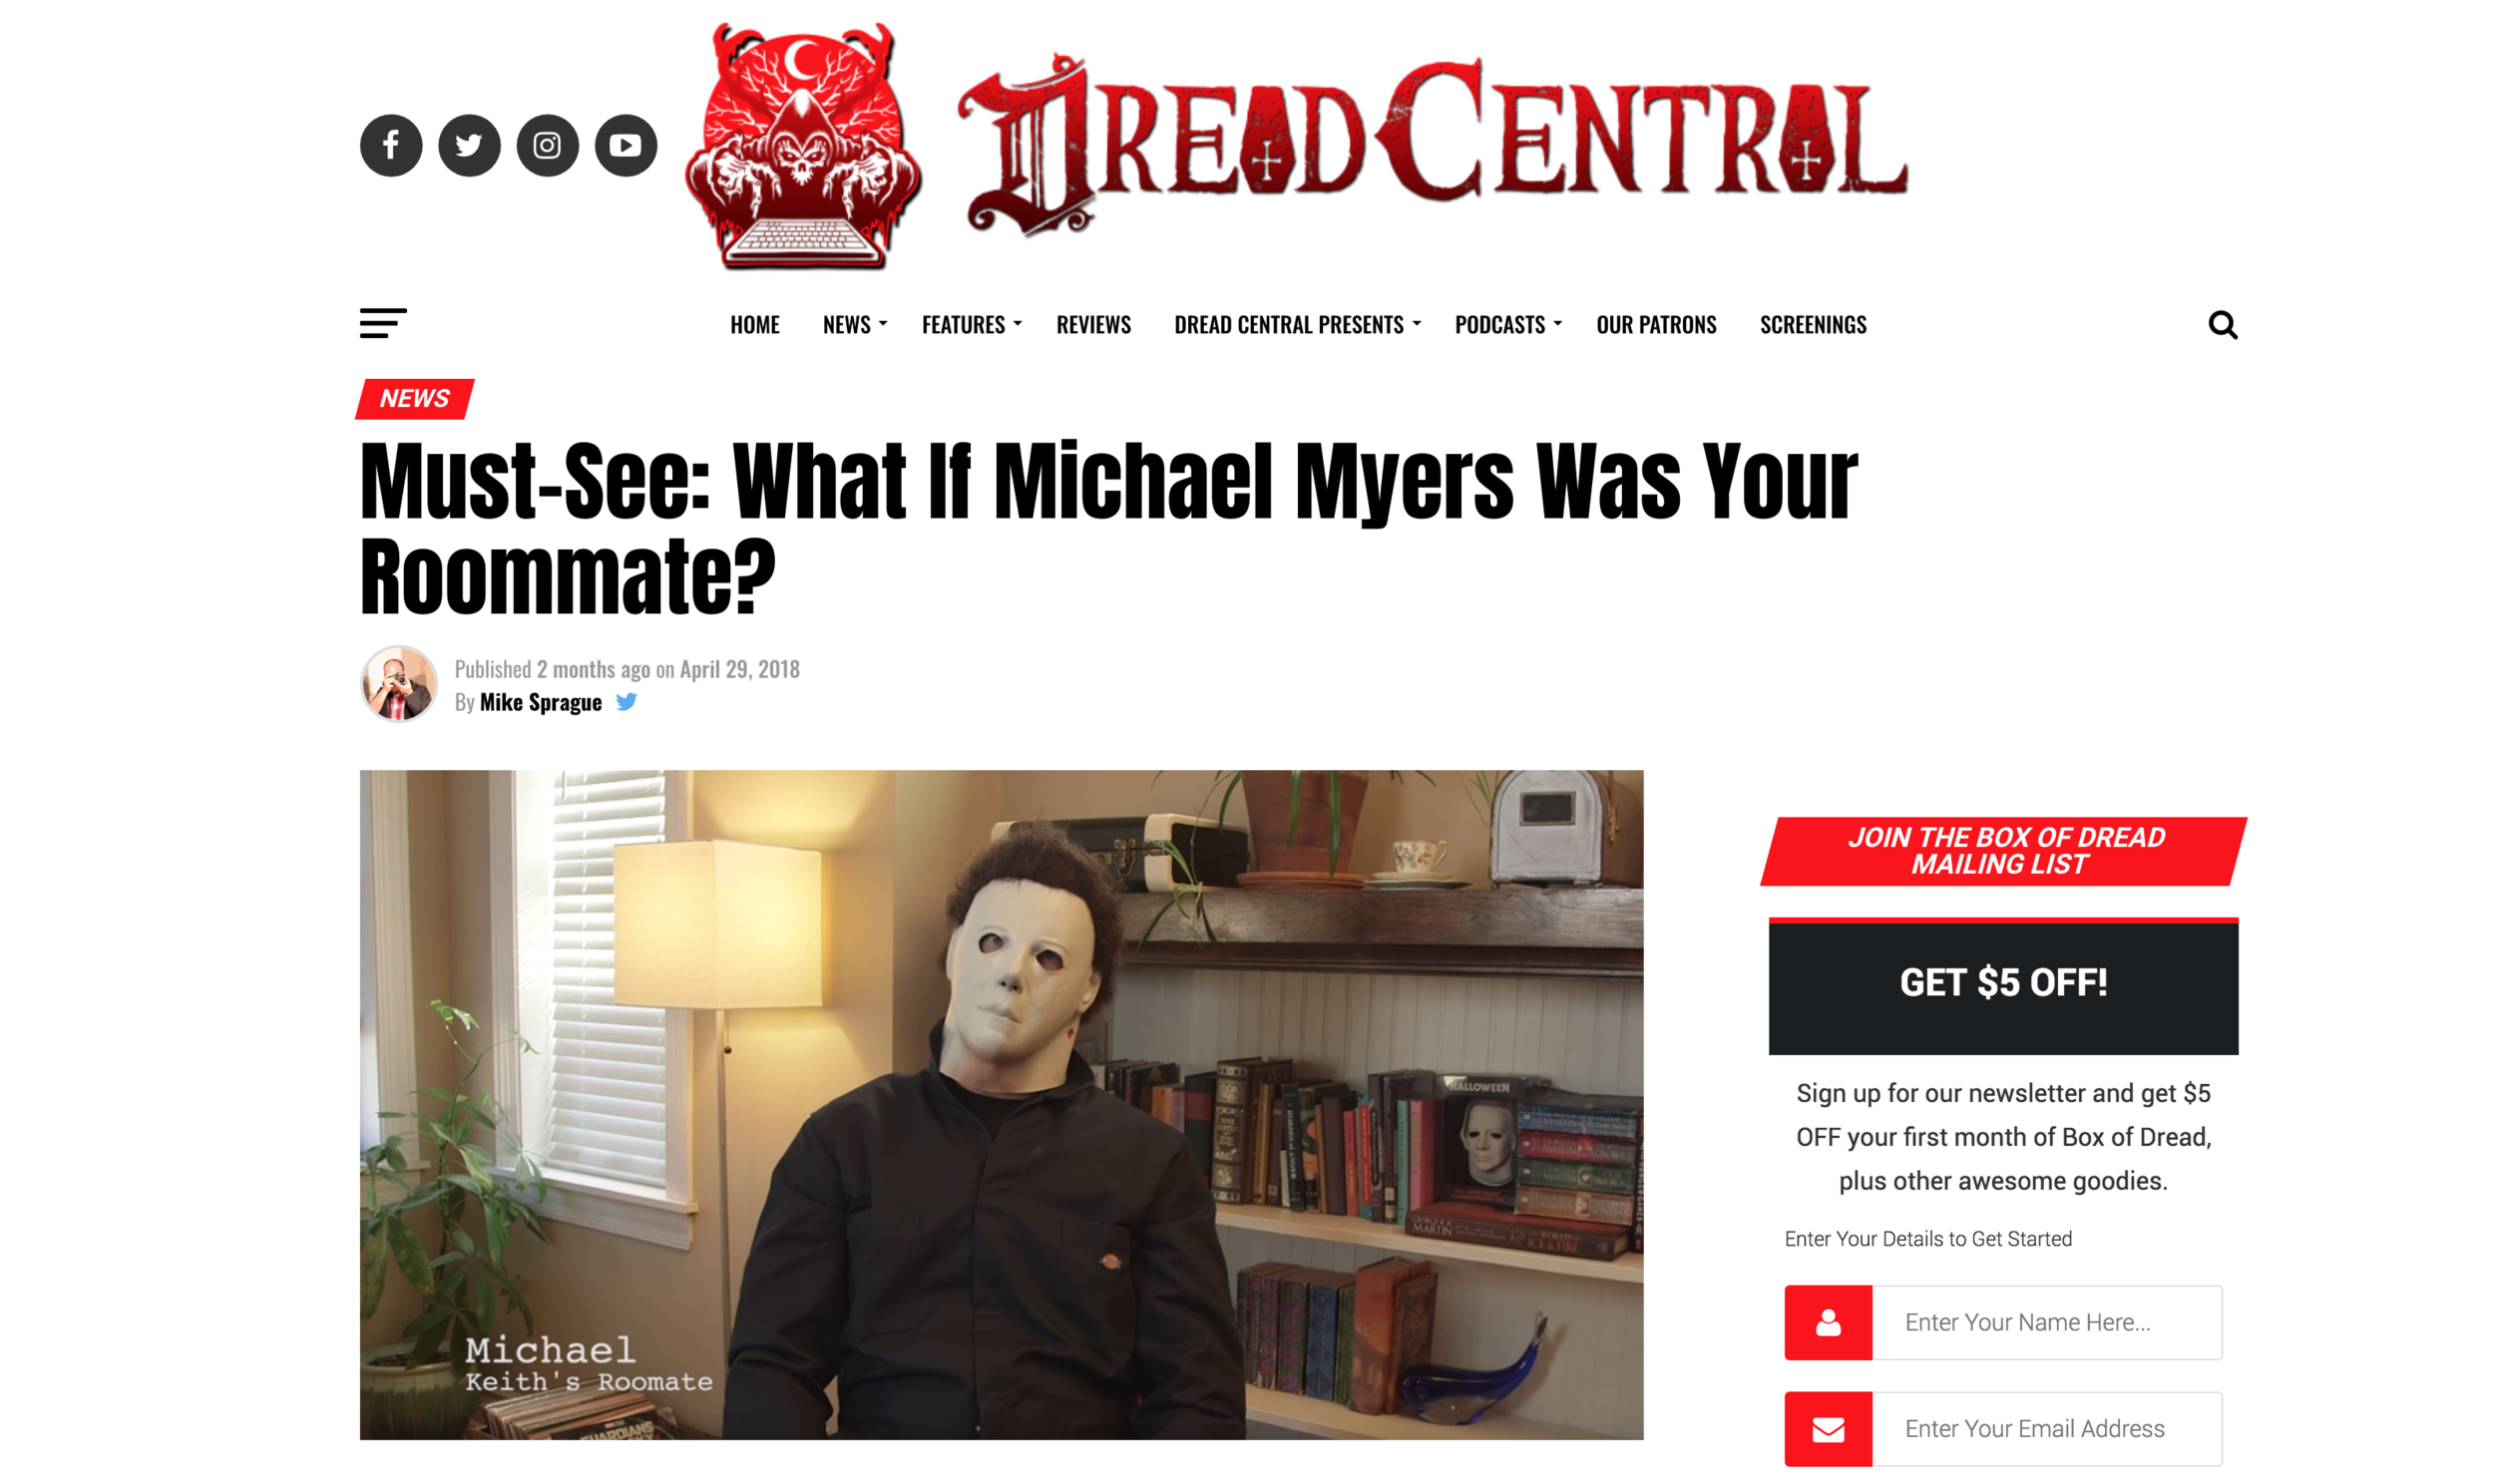 https://www.dreadcentral.com/news/272321/must-see-what-if-michael-myers-was-your-roommate/